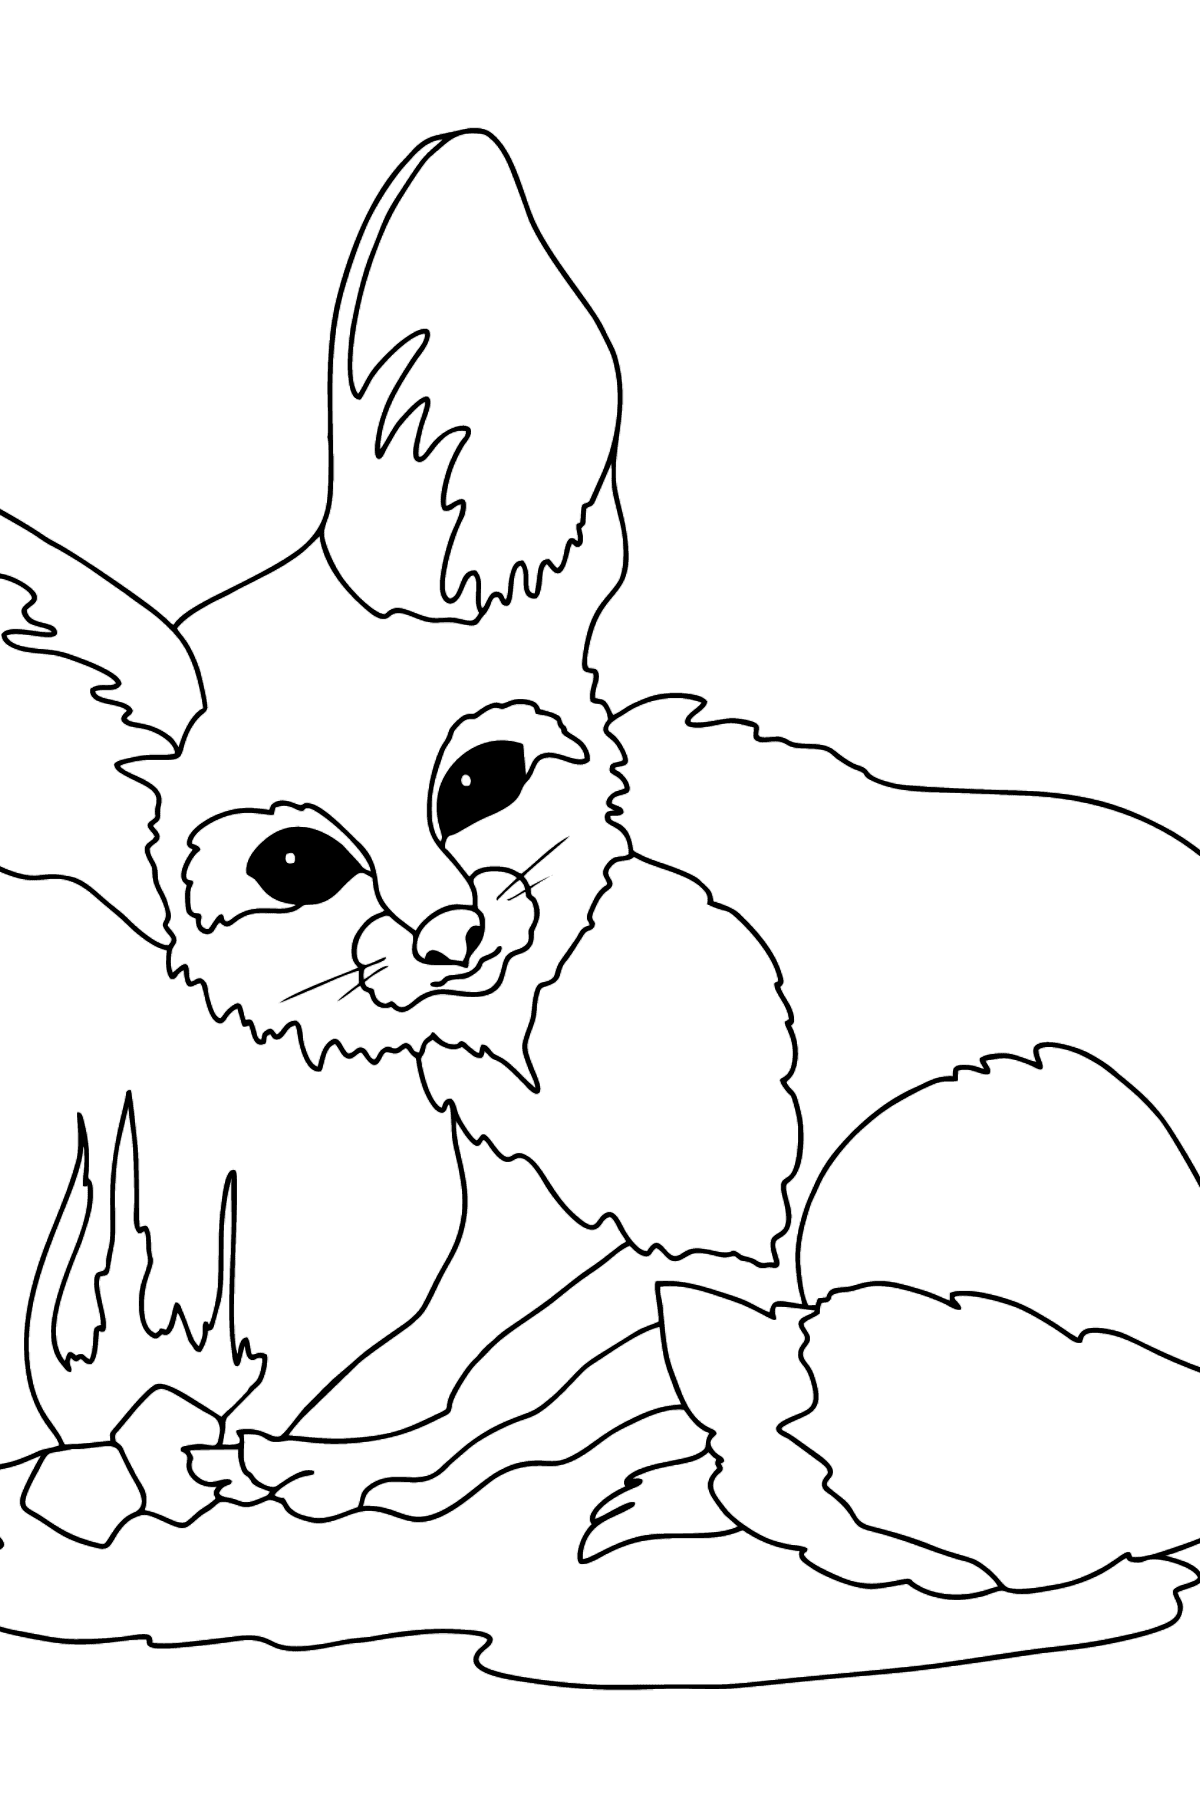 A Cautious Fennec Fox Coloring Page - Coloring Pages for Kids